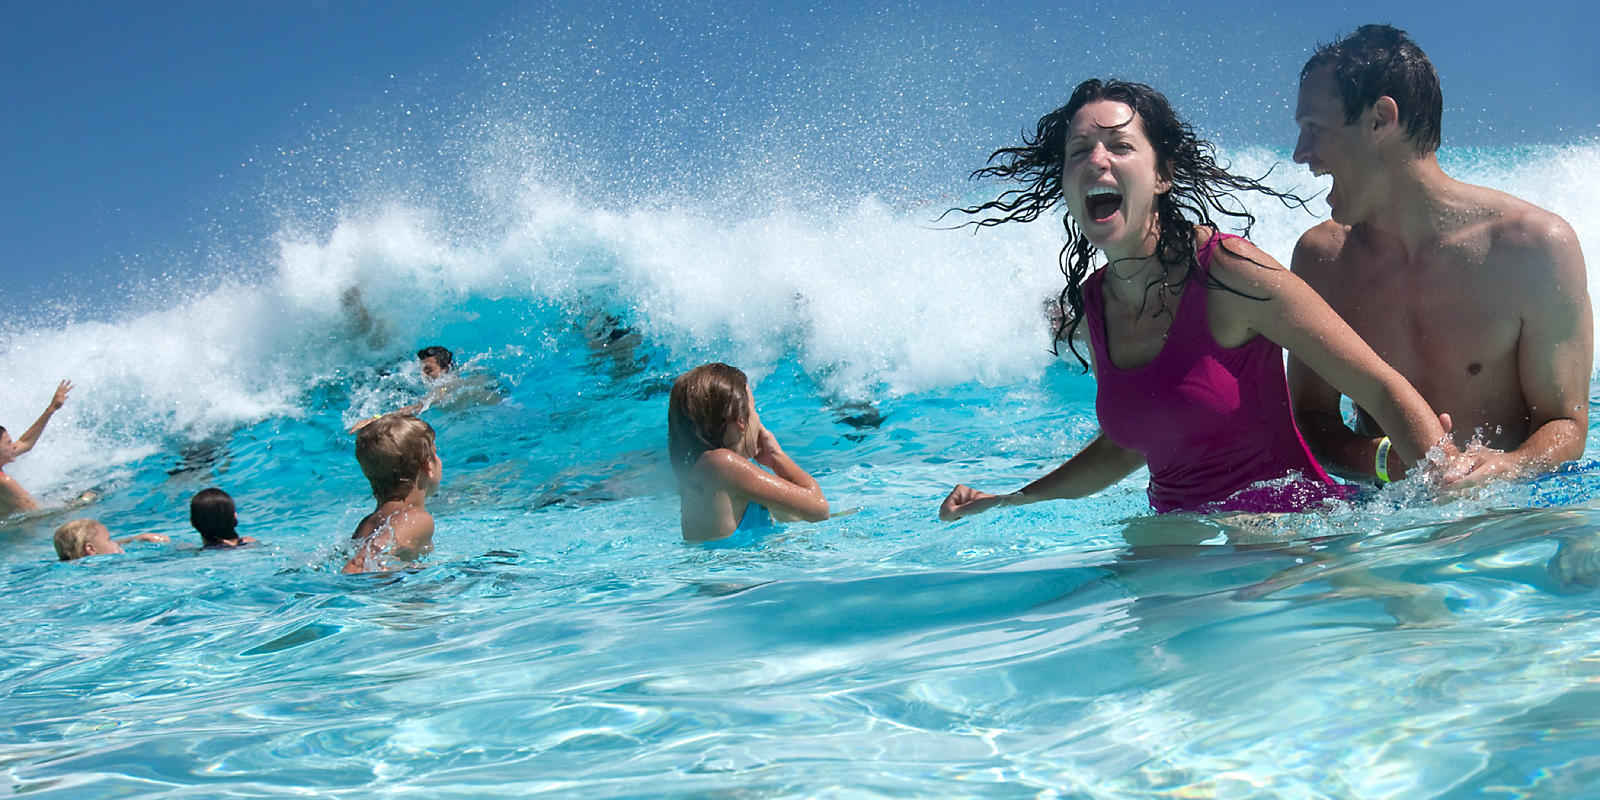 Couple and kids in wave pool